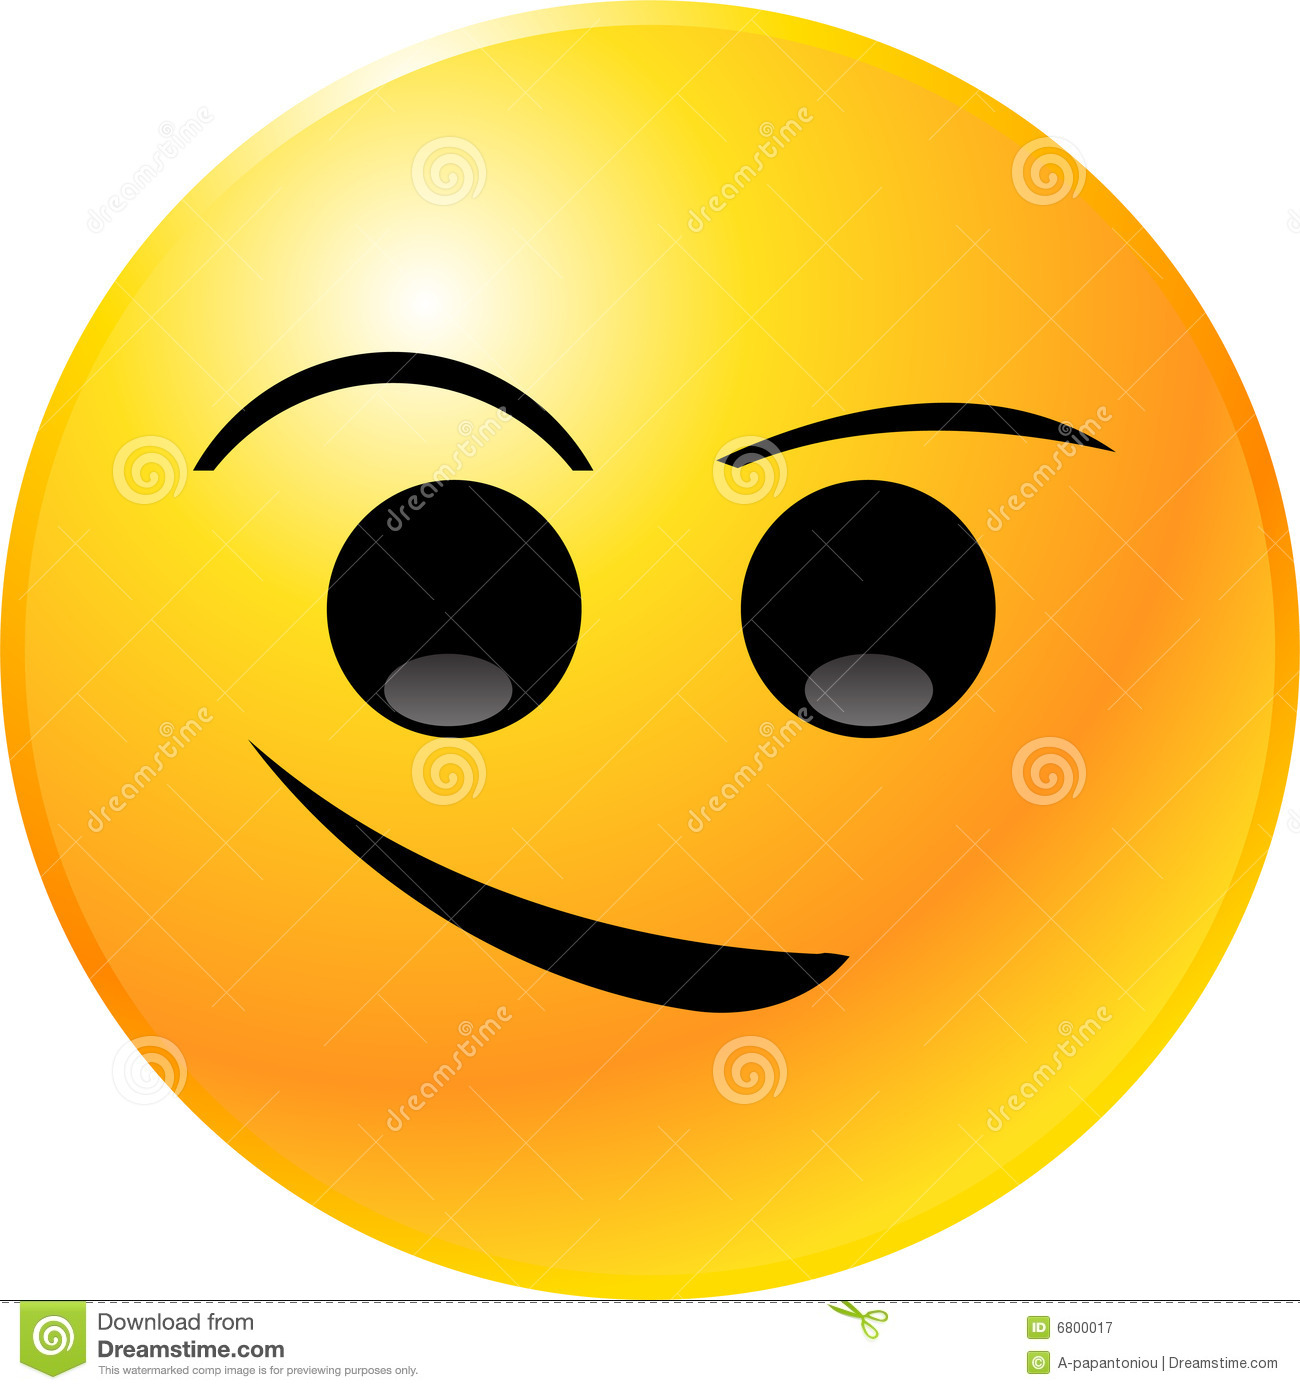 Smiley Face Emoticons Clipart.